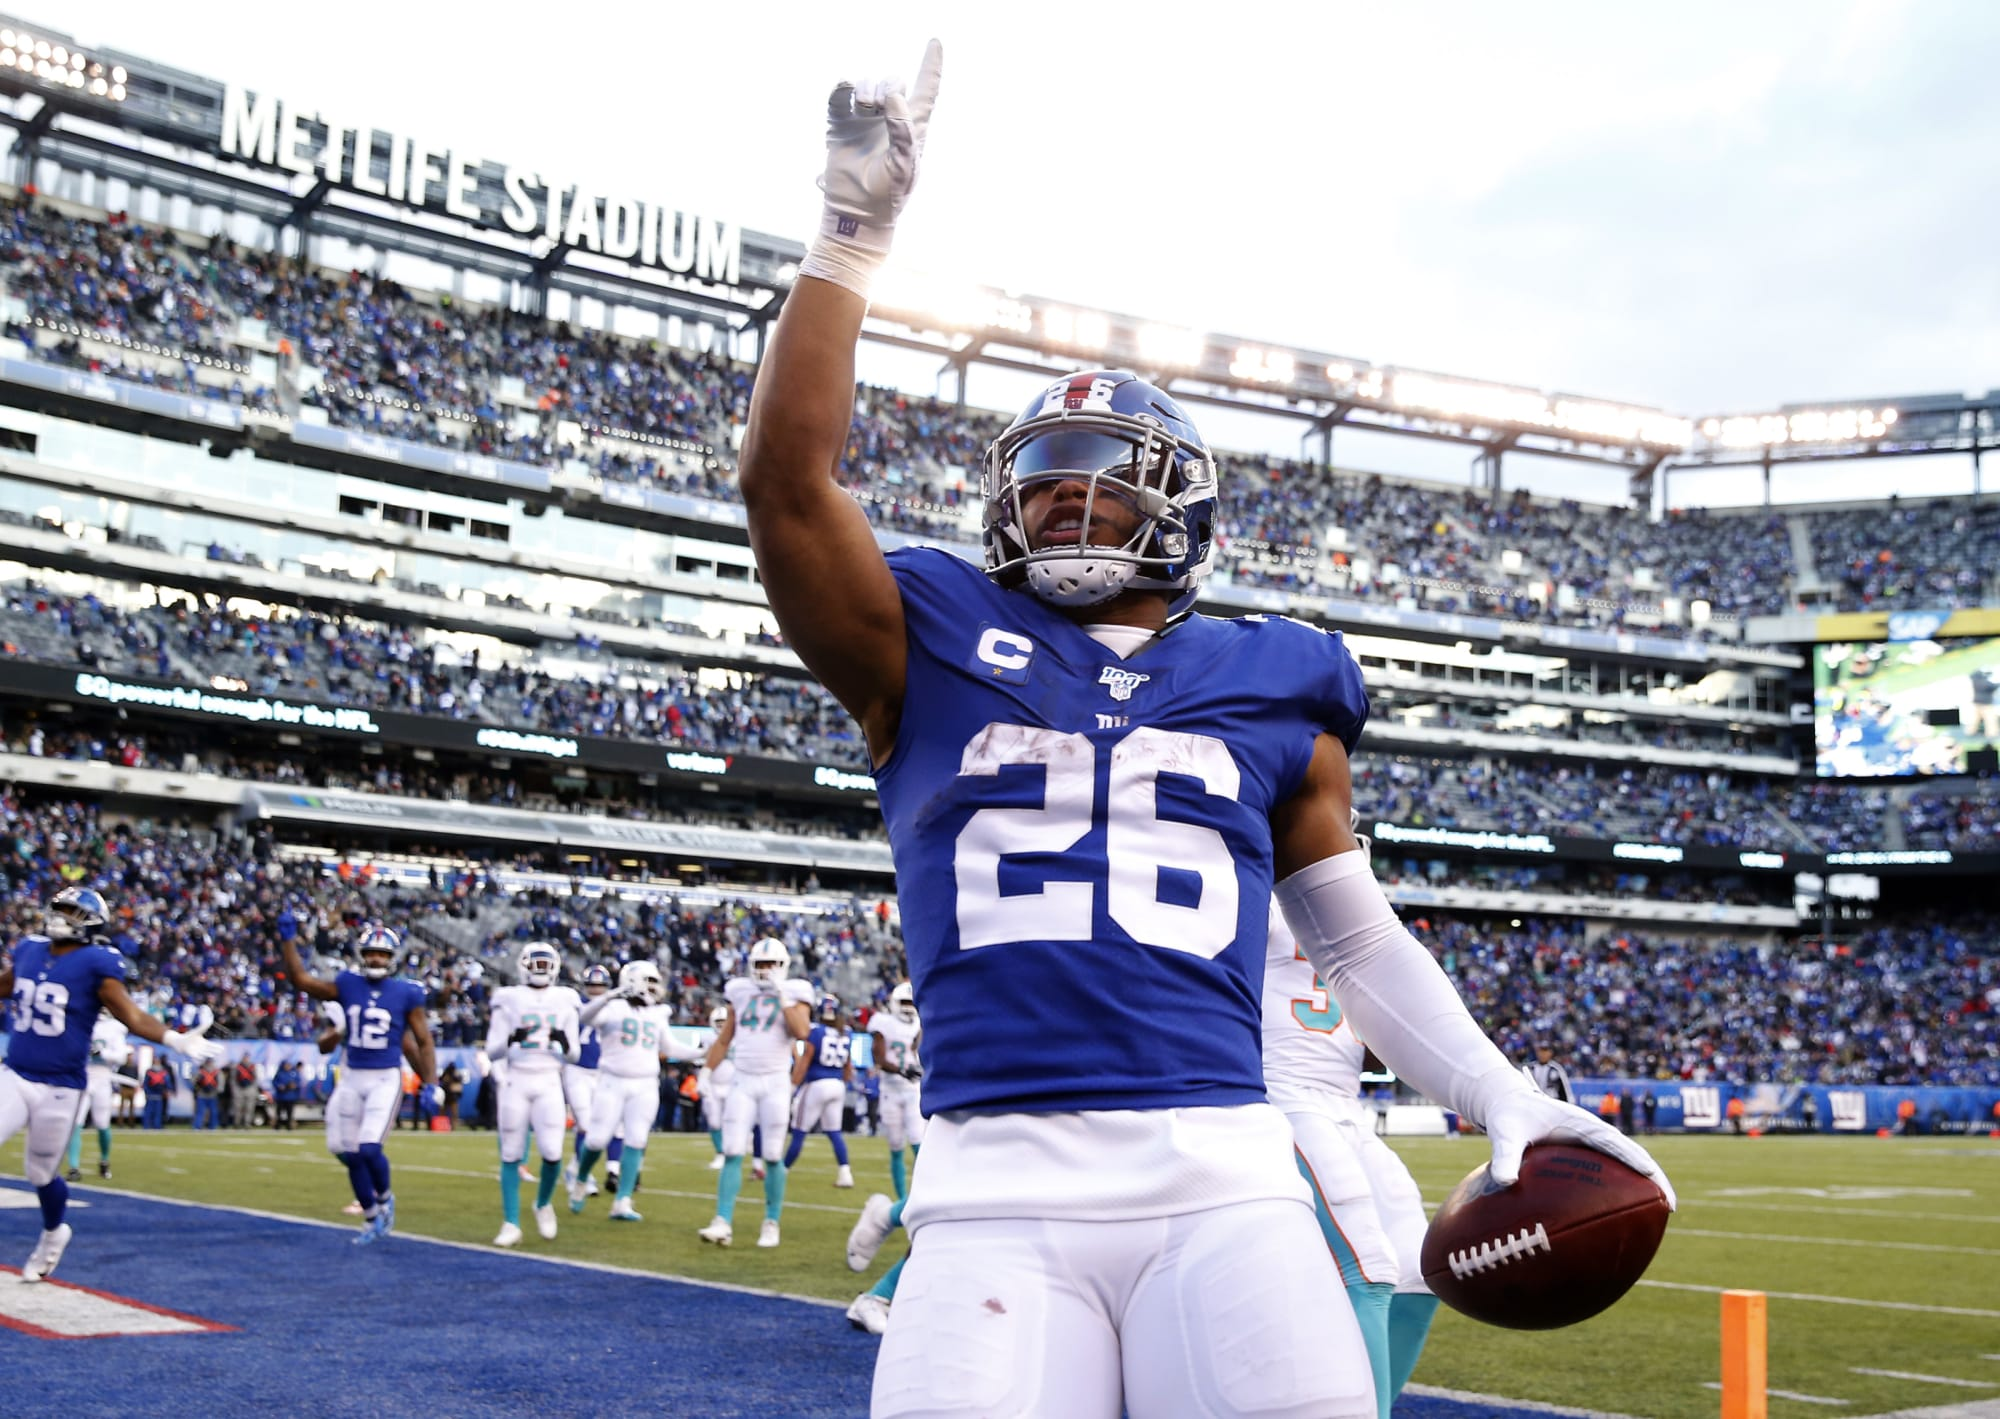 What makes NY Giants' Saquon Barkley special? His former teammate weighs in